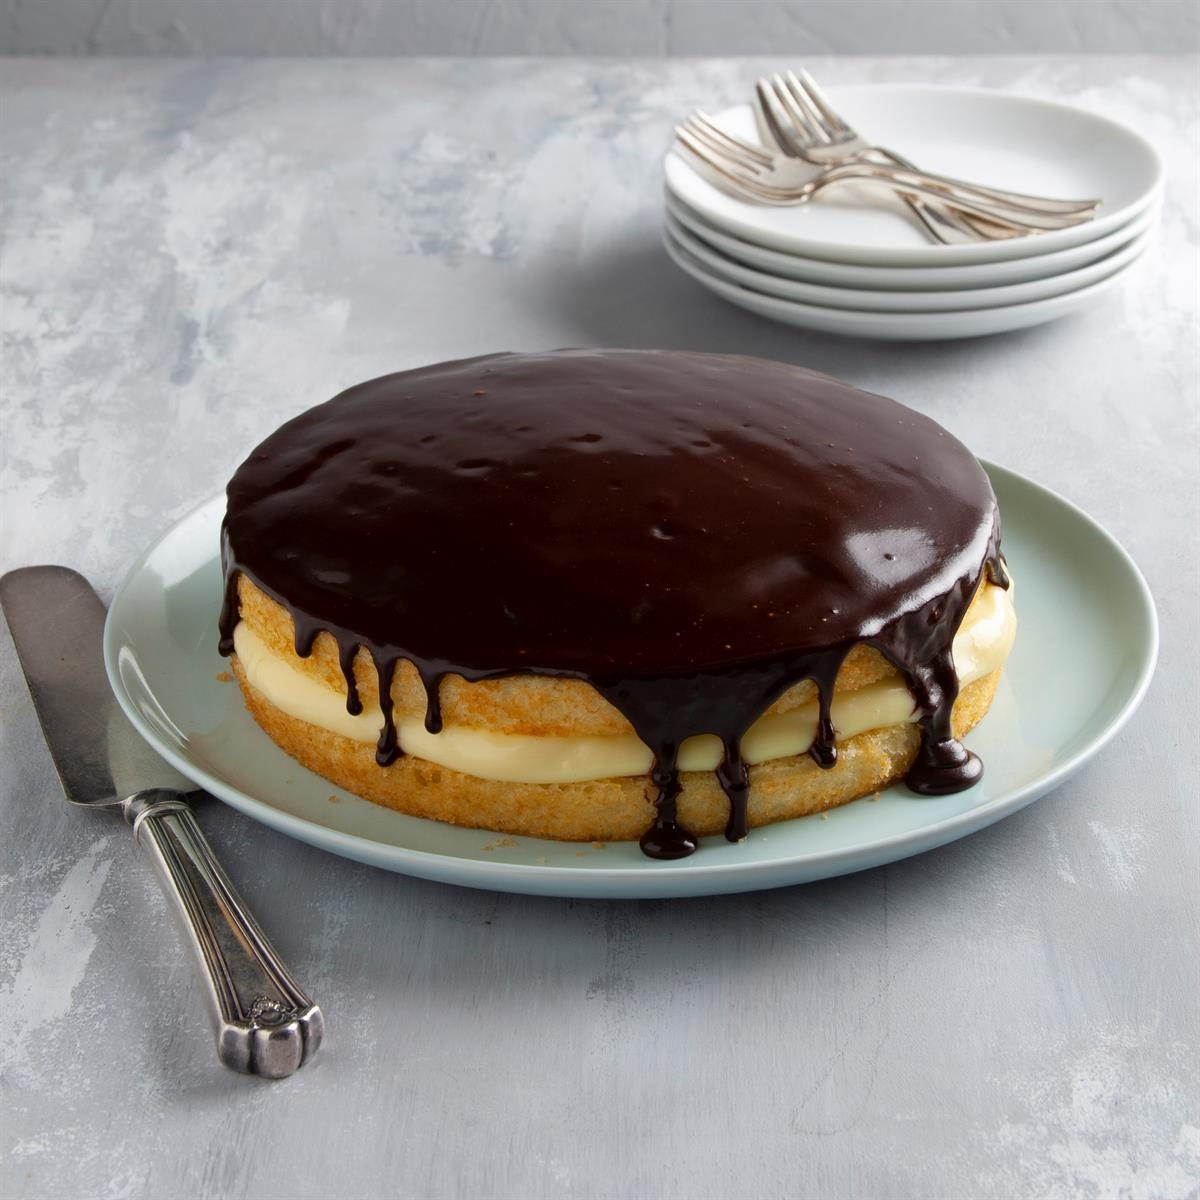 United States: Boston Cream Pie